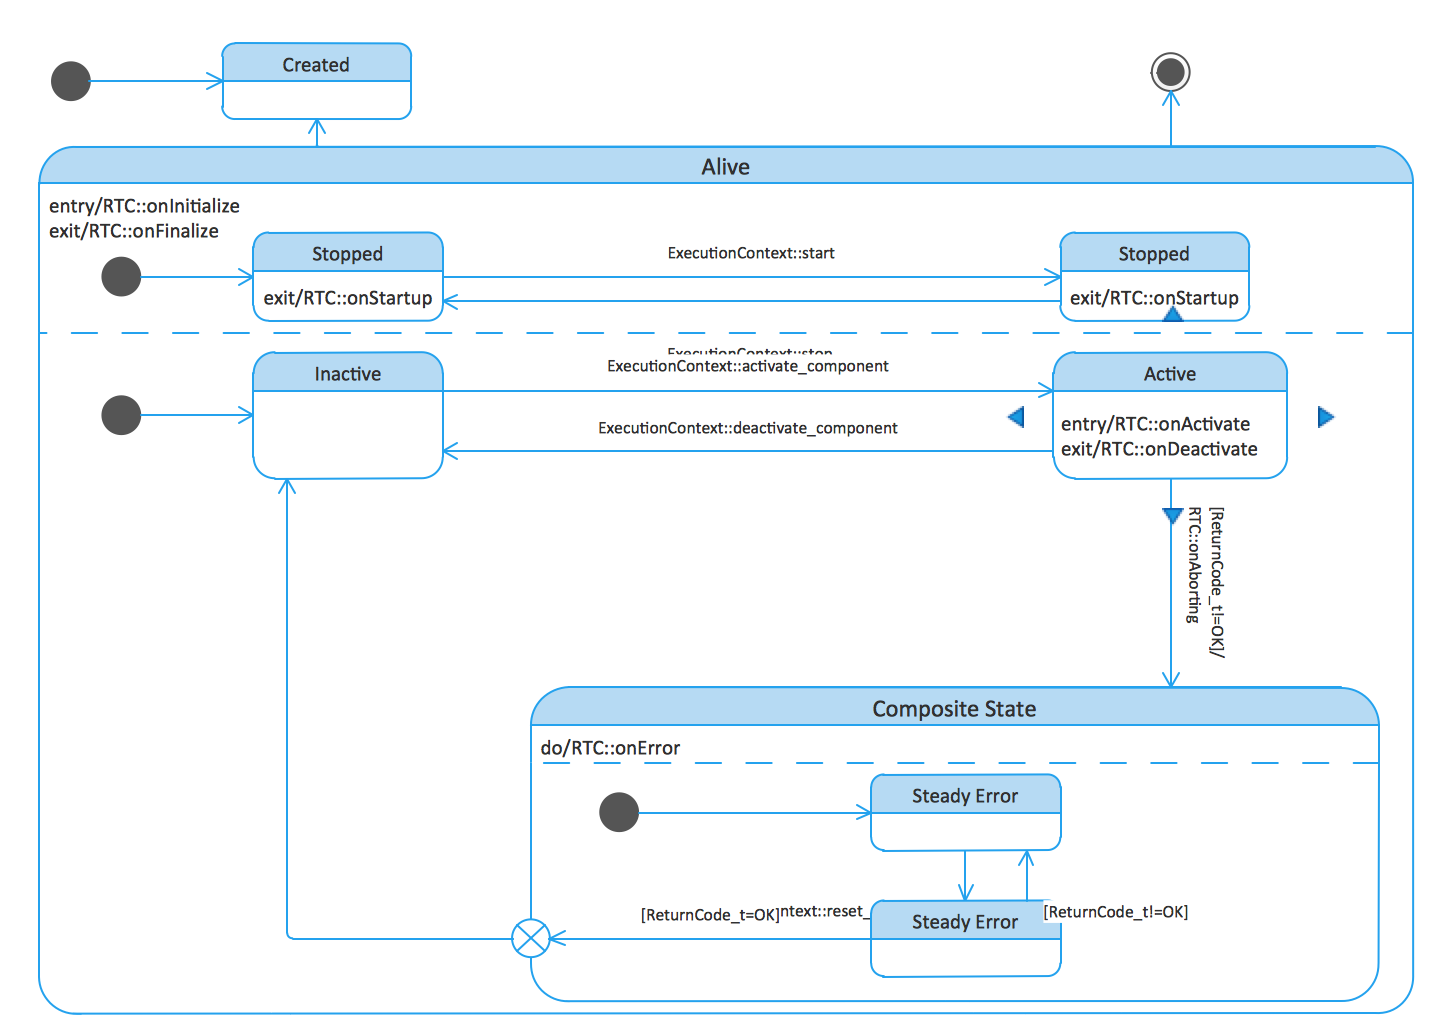 UML State Machine Diagrams. State transitions of RT component